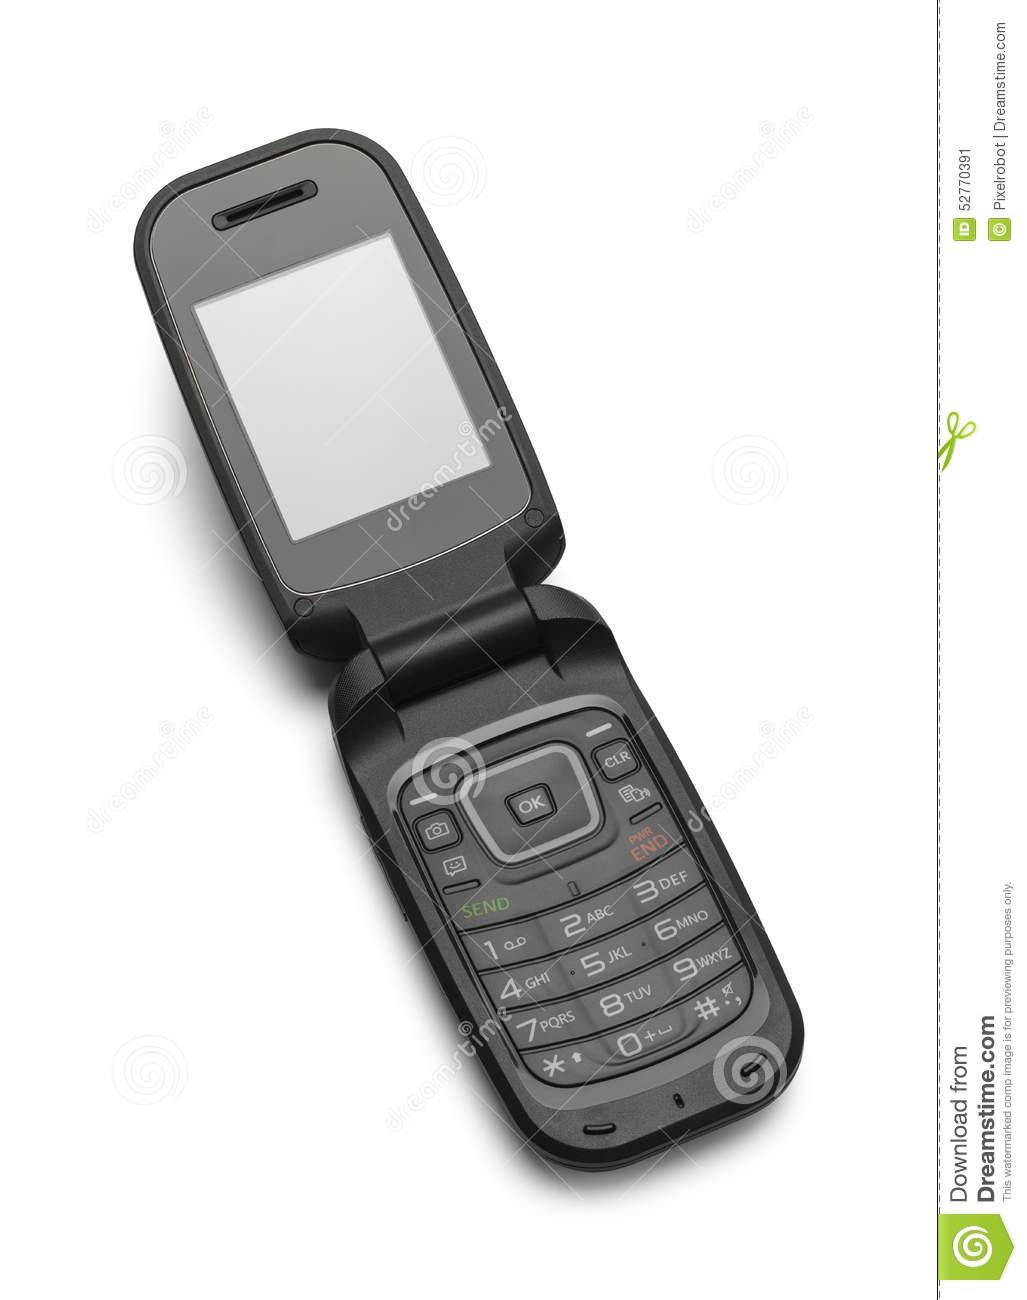 Flip phone clipart black and white.